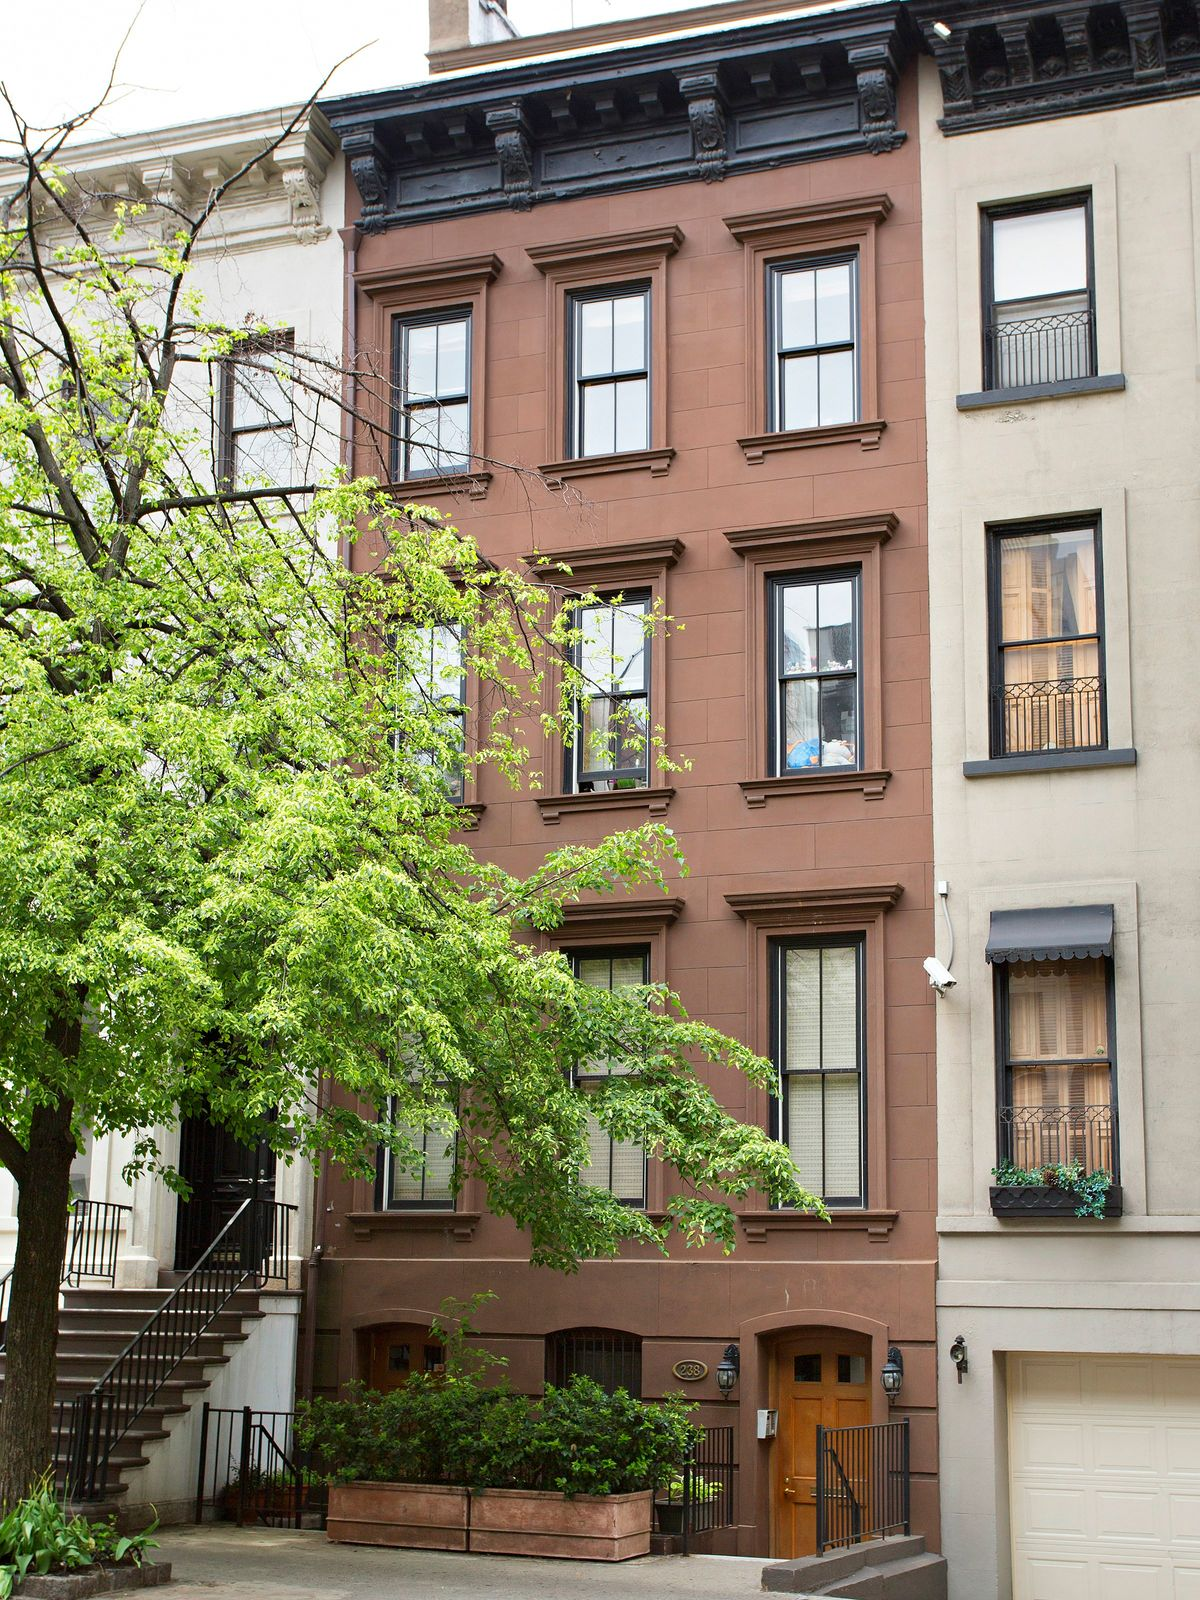 238 East 61st Street, New York NY Townhouse - New York City Real Estate